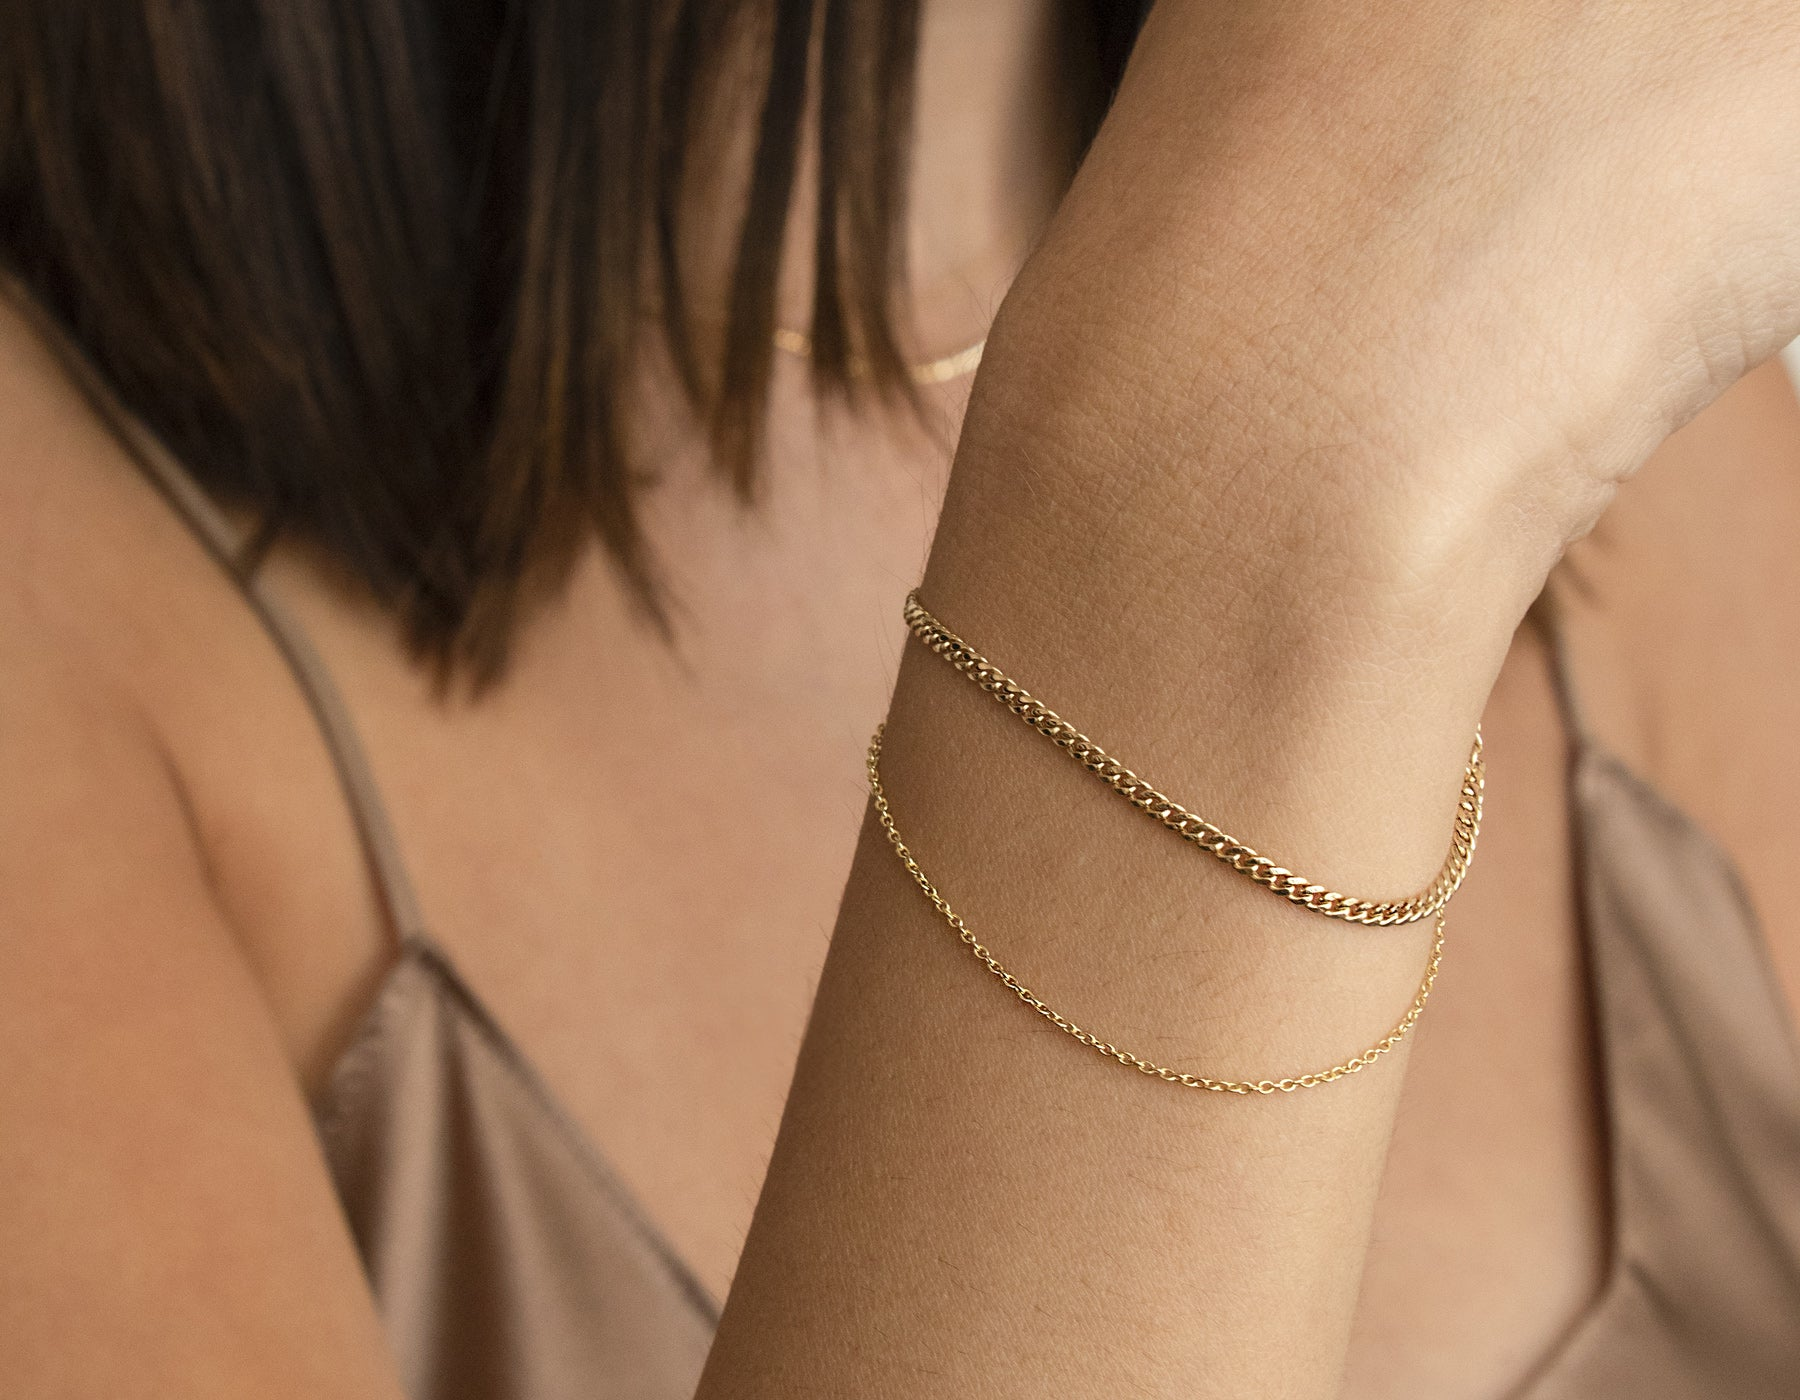 Woman wearing Vrai and Oro simple classic Chain Link Bracelet Thick Cuban Thin Oval 14k solid gold